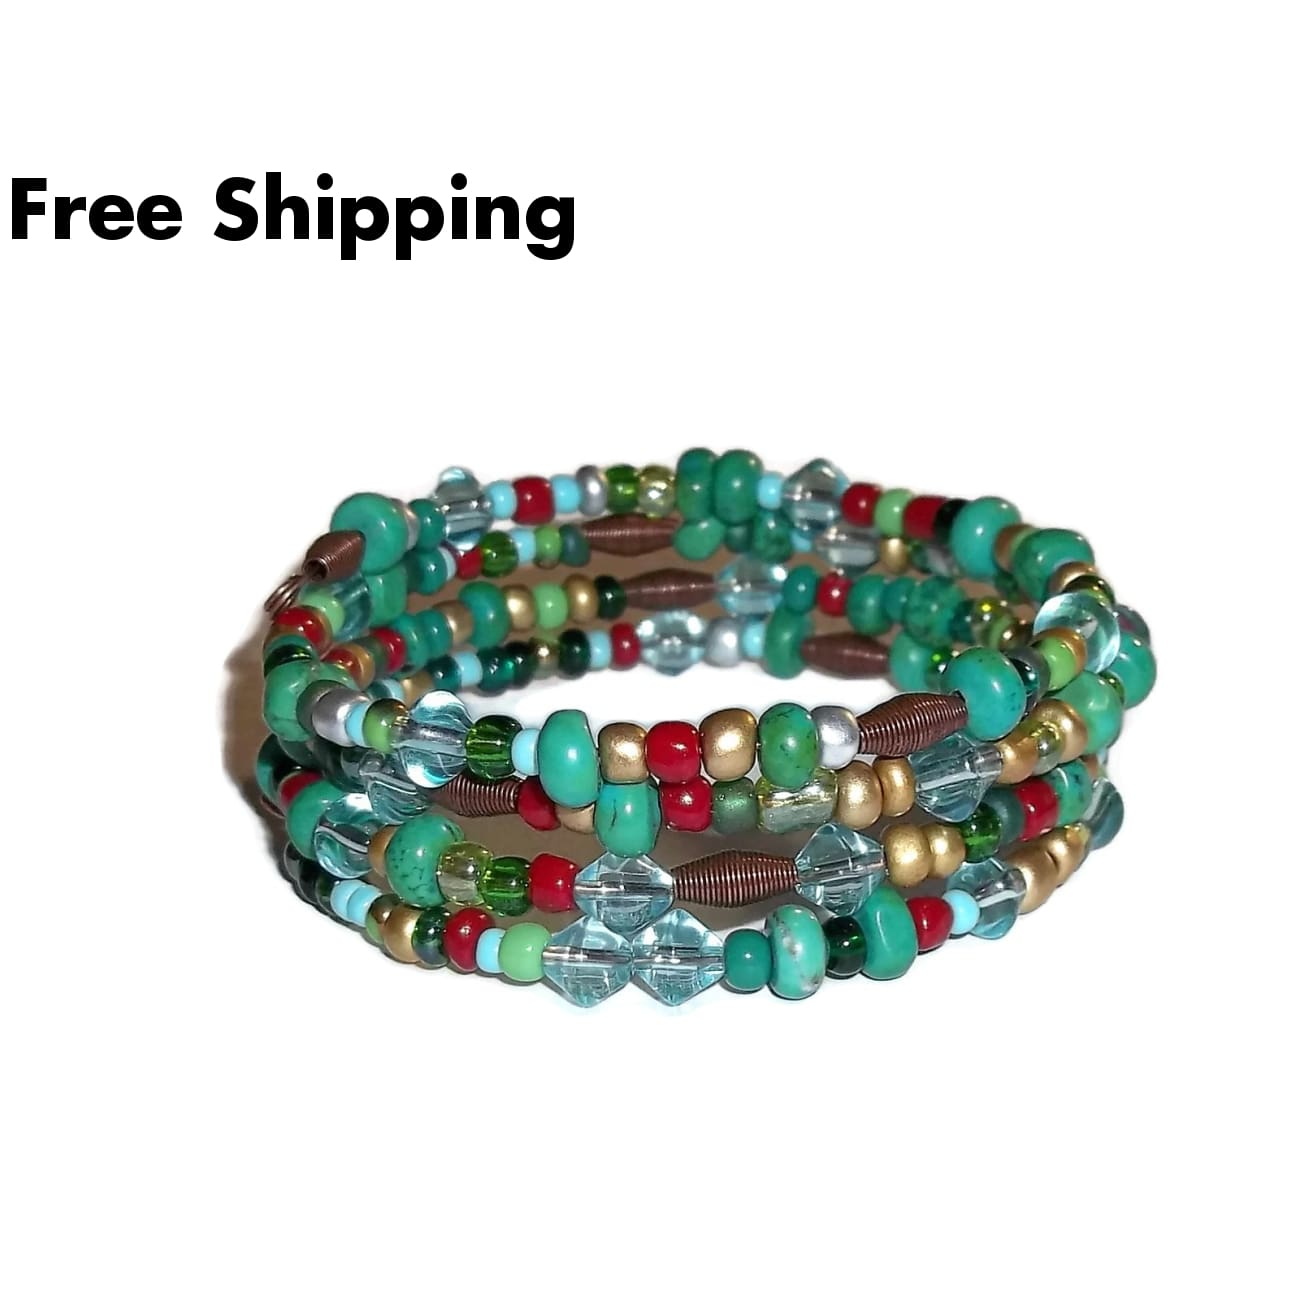 Turquoise Picasso Style Mixed Bead Artisan Crafted Antique Copper Wrap Bracelet - Bracelets